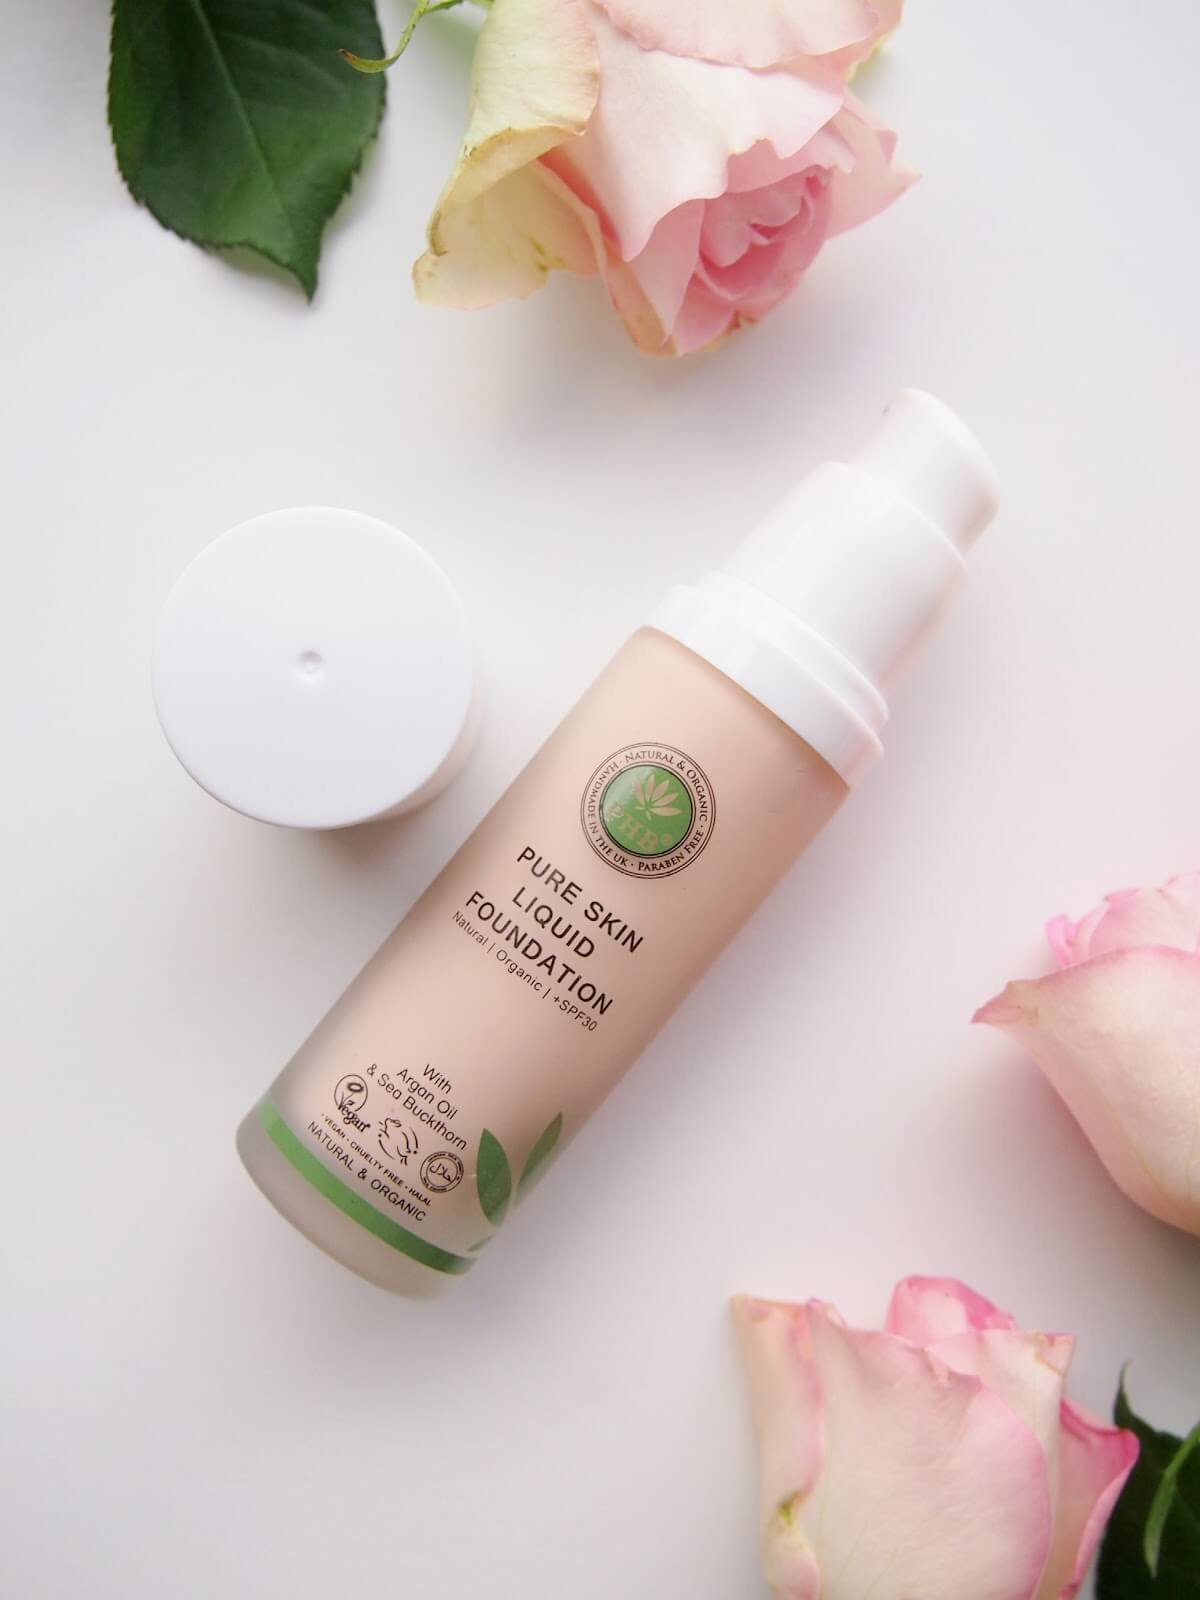 phb ethical beauty foundation